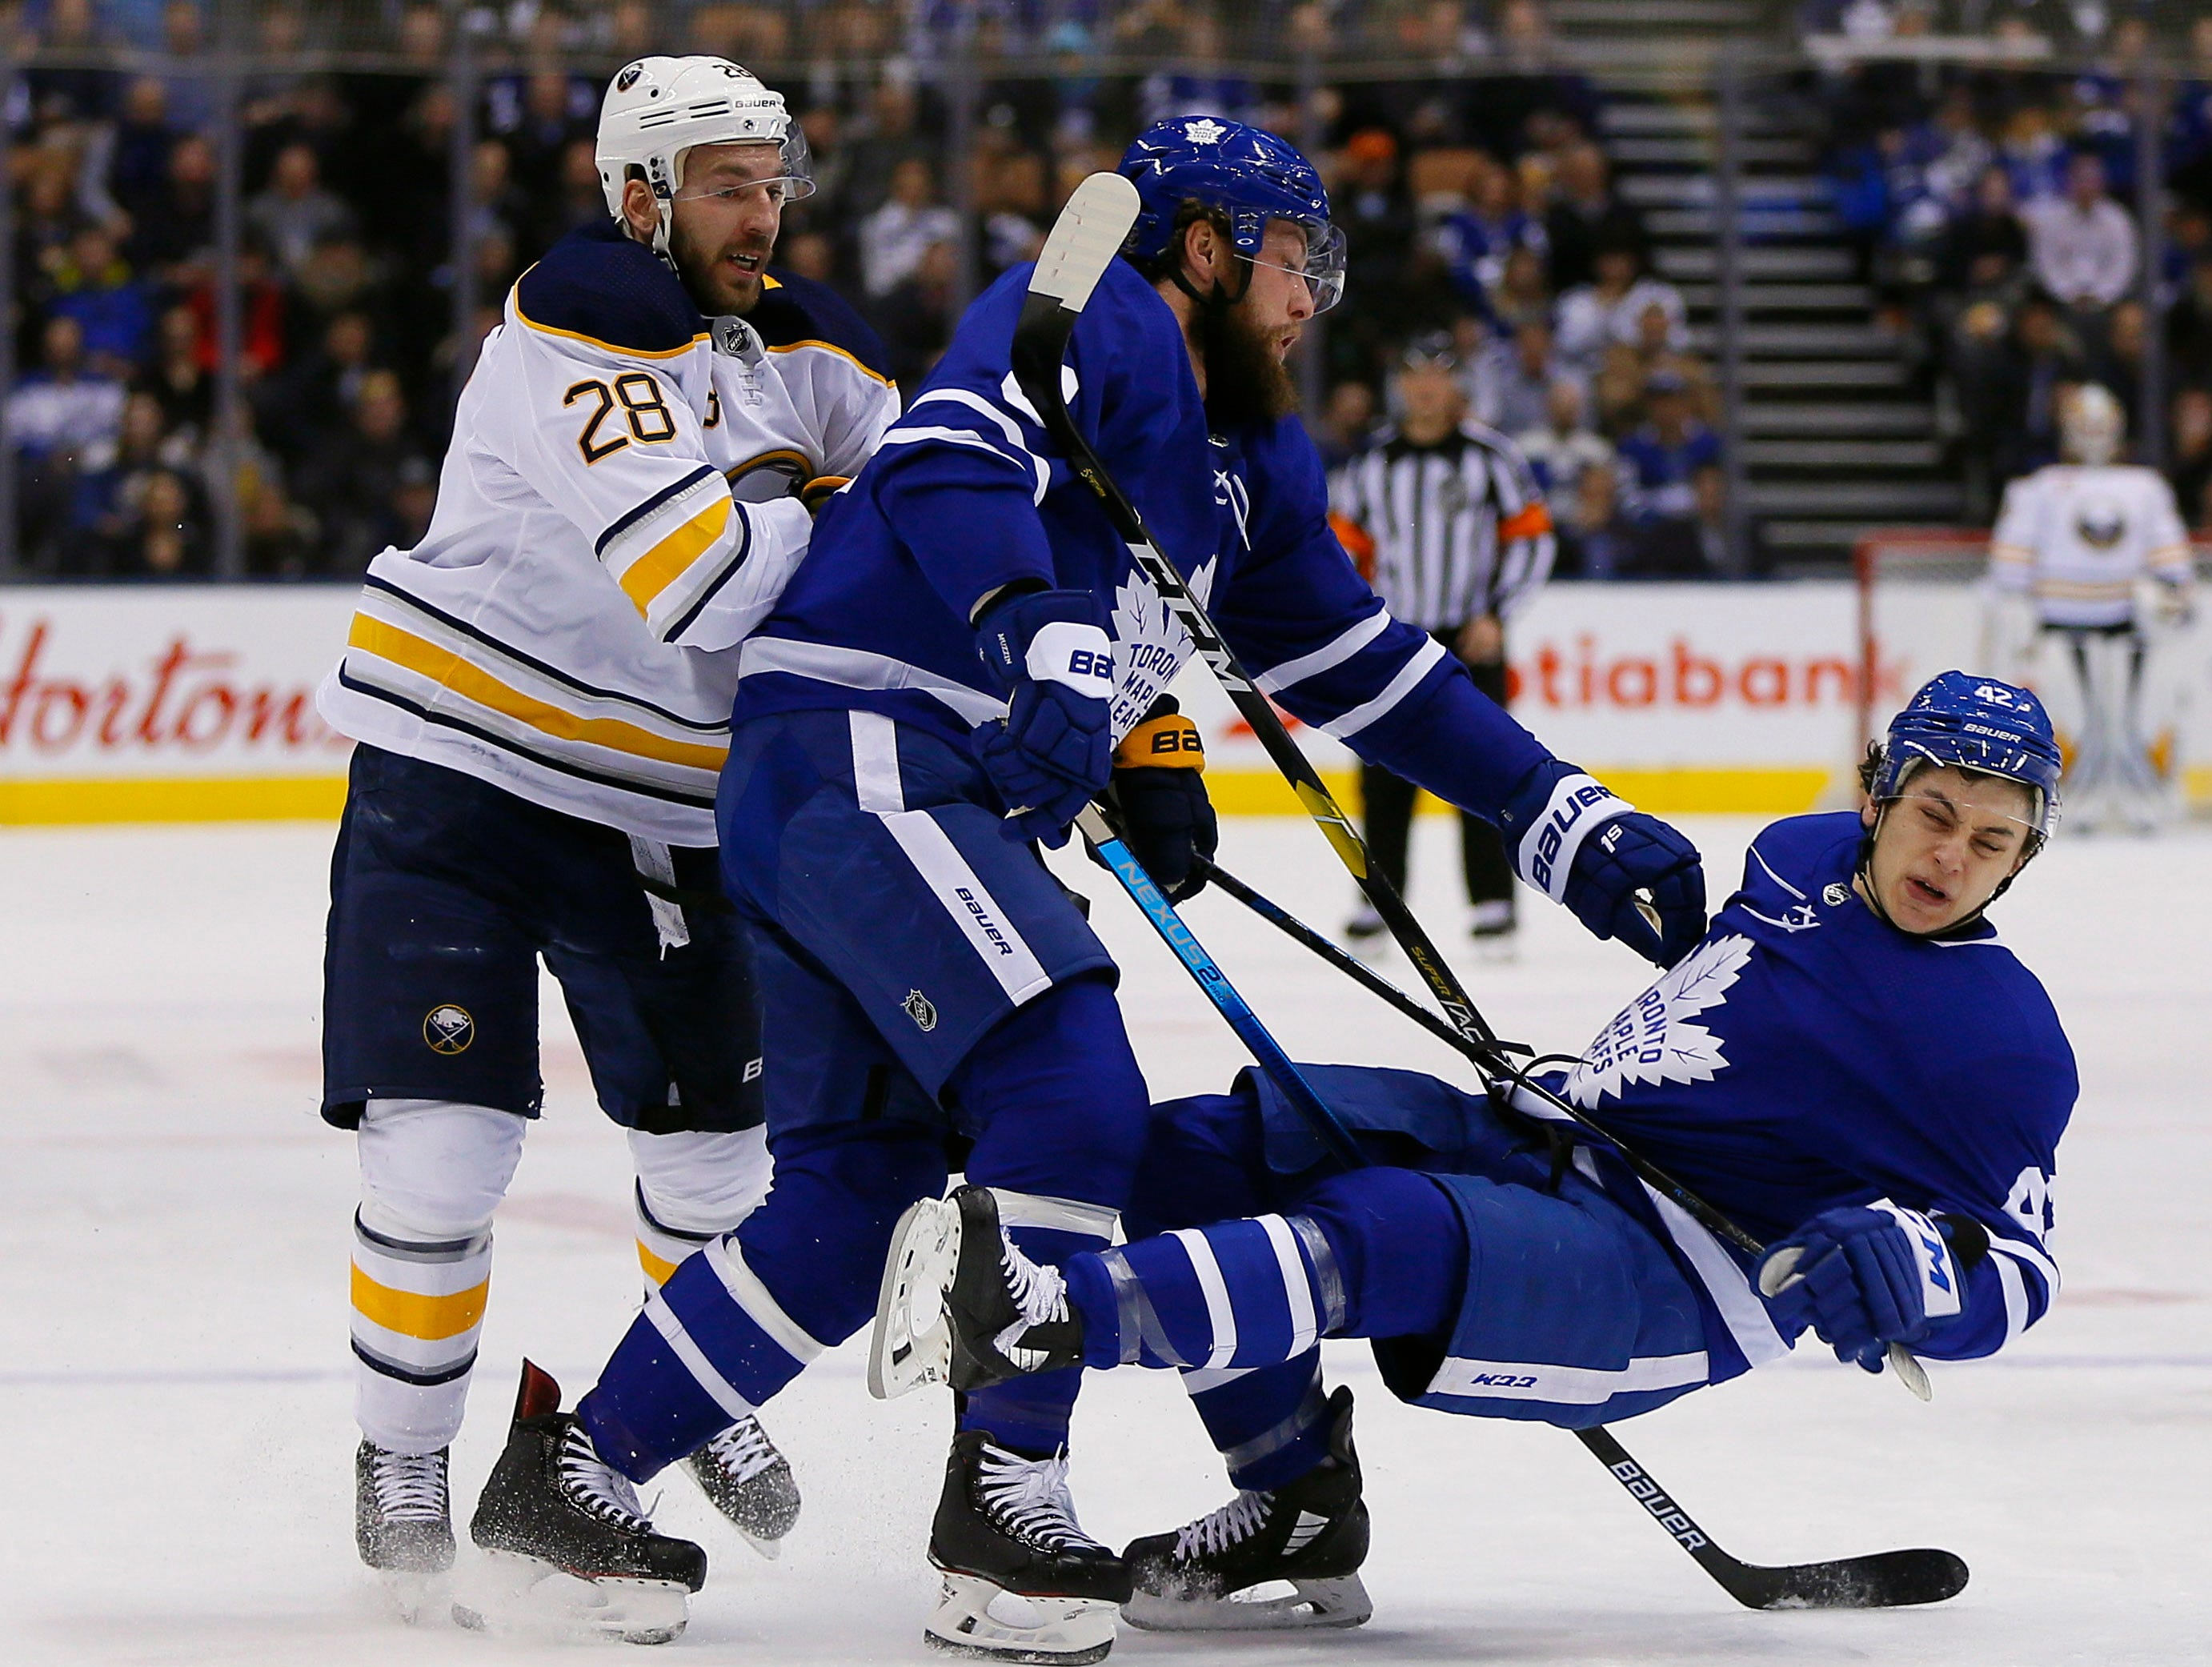 Feb. 25: Toronto Maple Leafs defenseman Jake Muzzin (8) and forward Trevor Moore (42) collide as Buffalo Sabres forward Zemgus Girgensons (28) looks on during the first period at Scotiabank Arena.